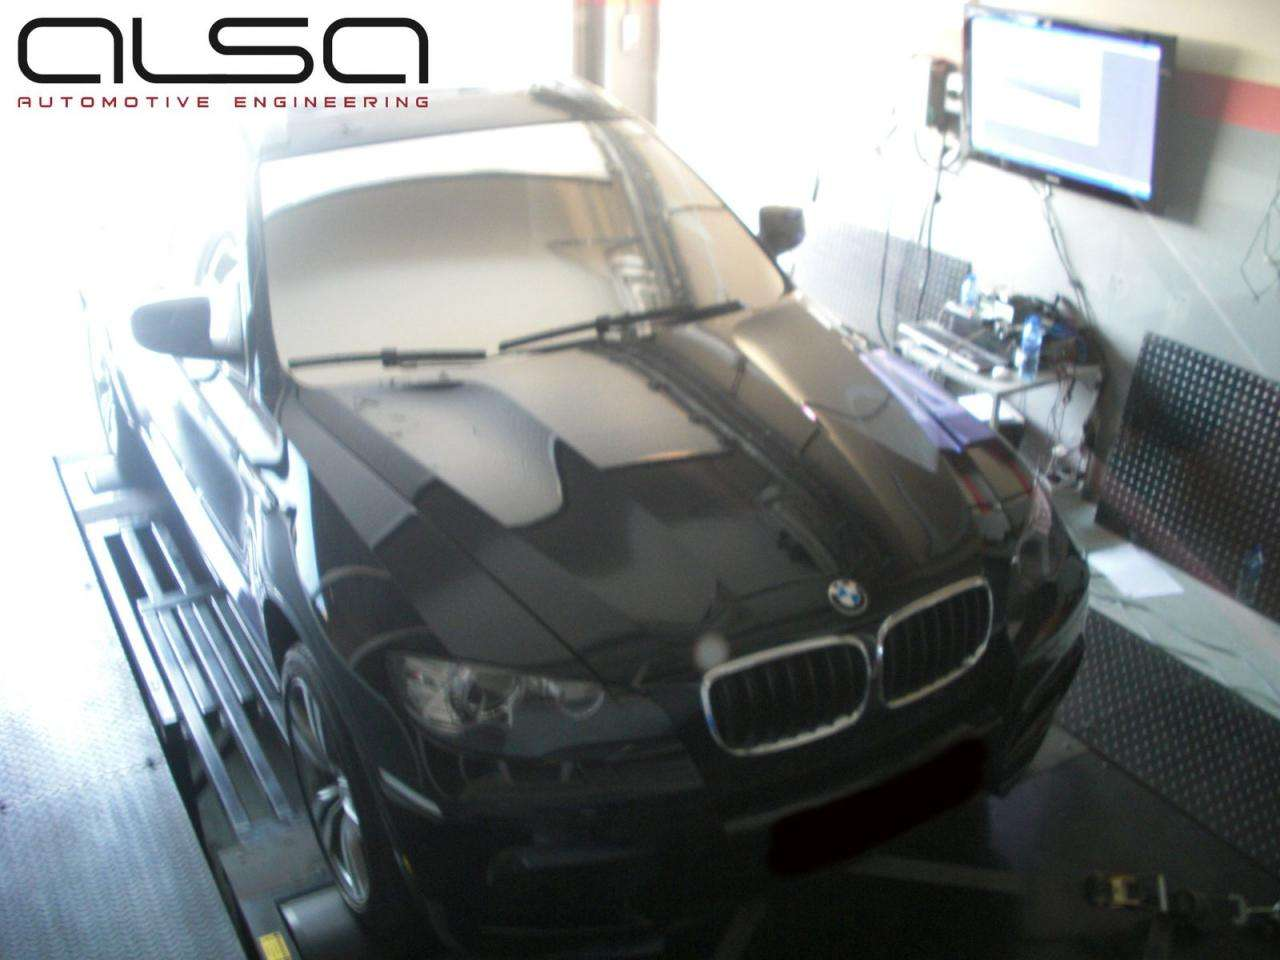 BMW X6 M Alsa Automotive Engineering lipiec 2010